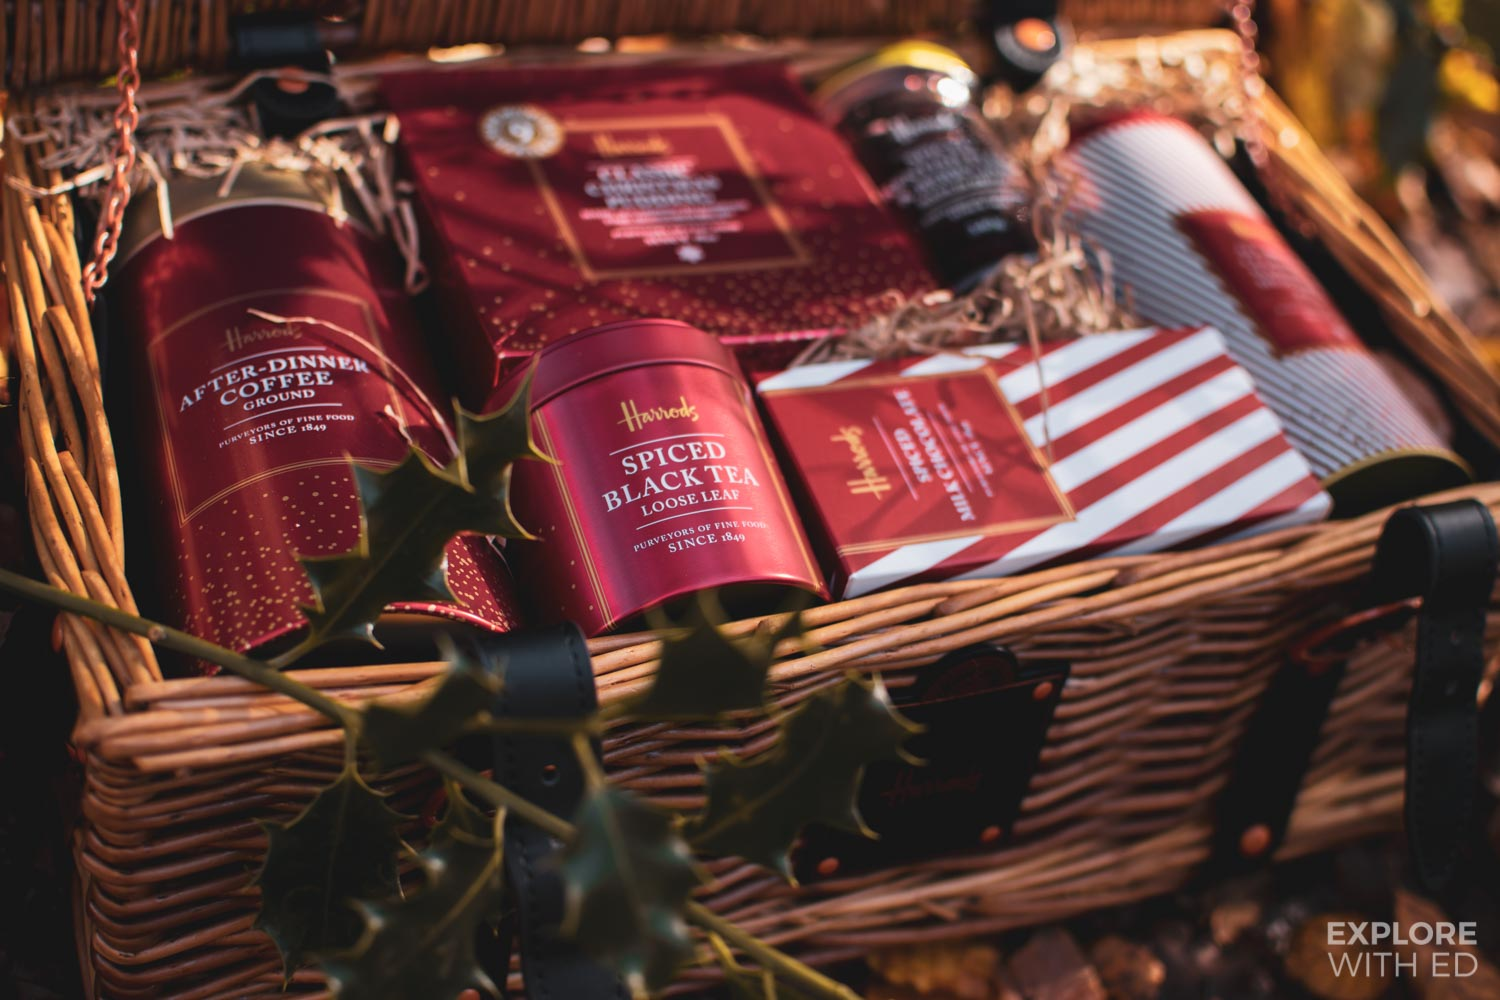 Harrods Christmas hamper range including spiced black tea